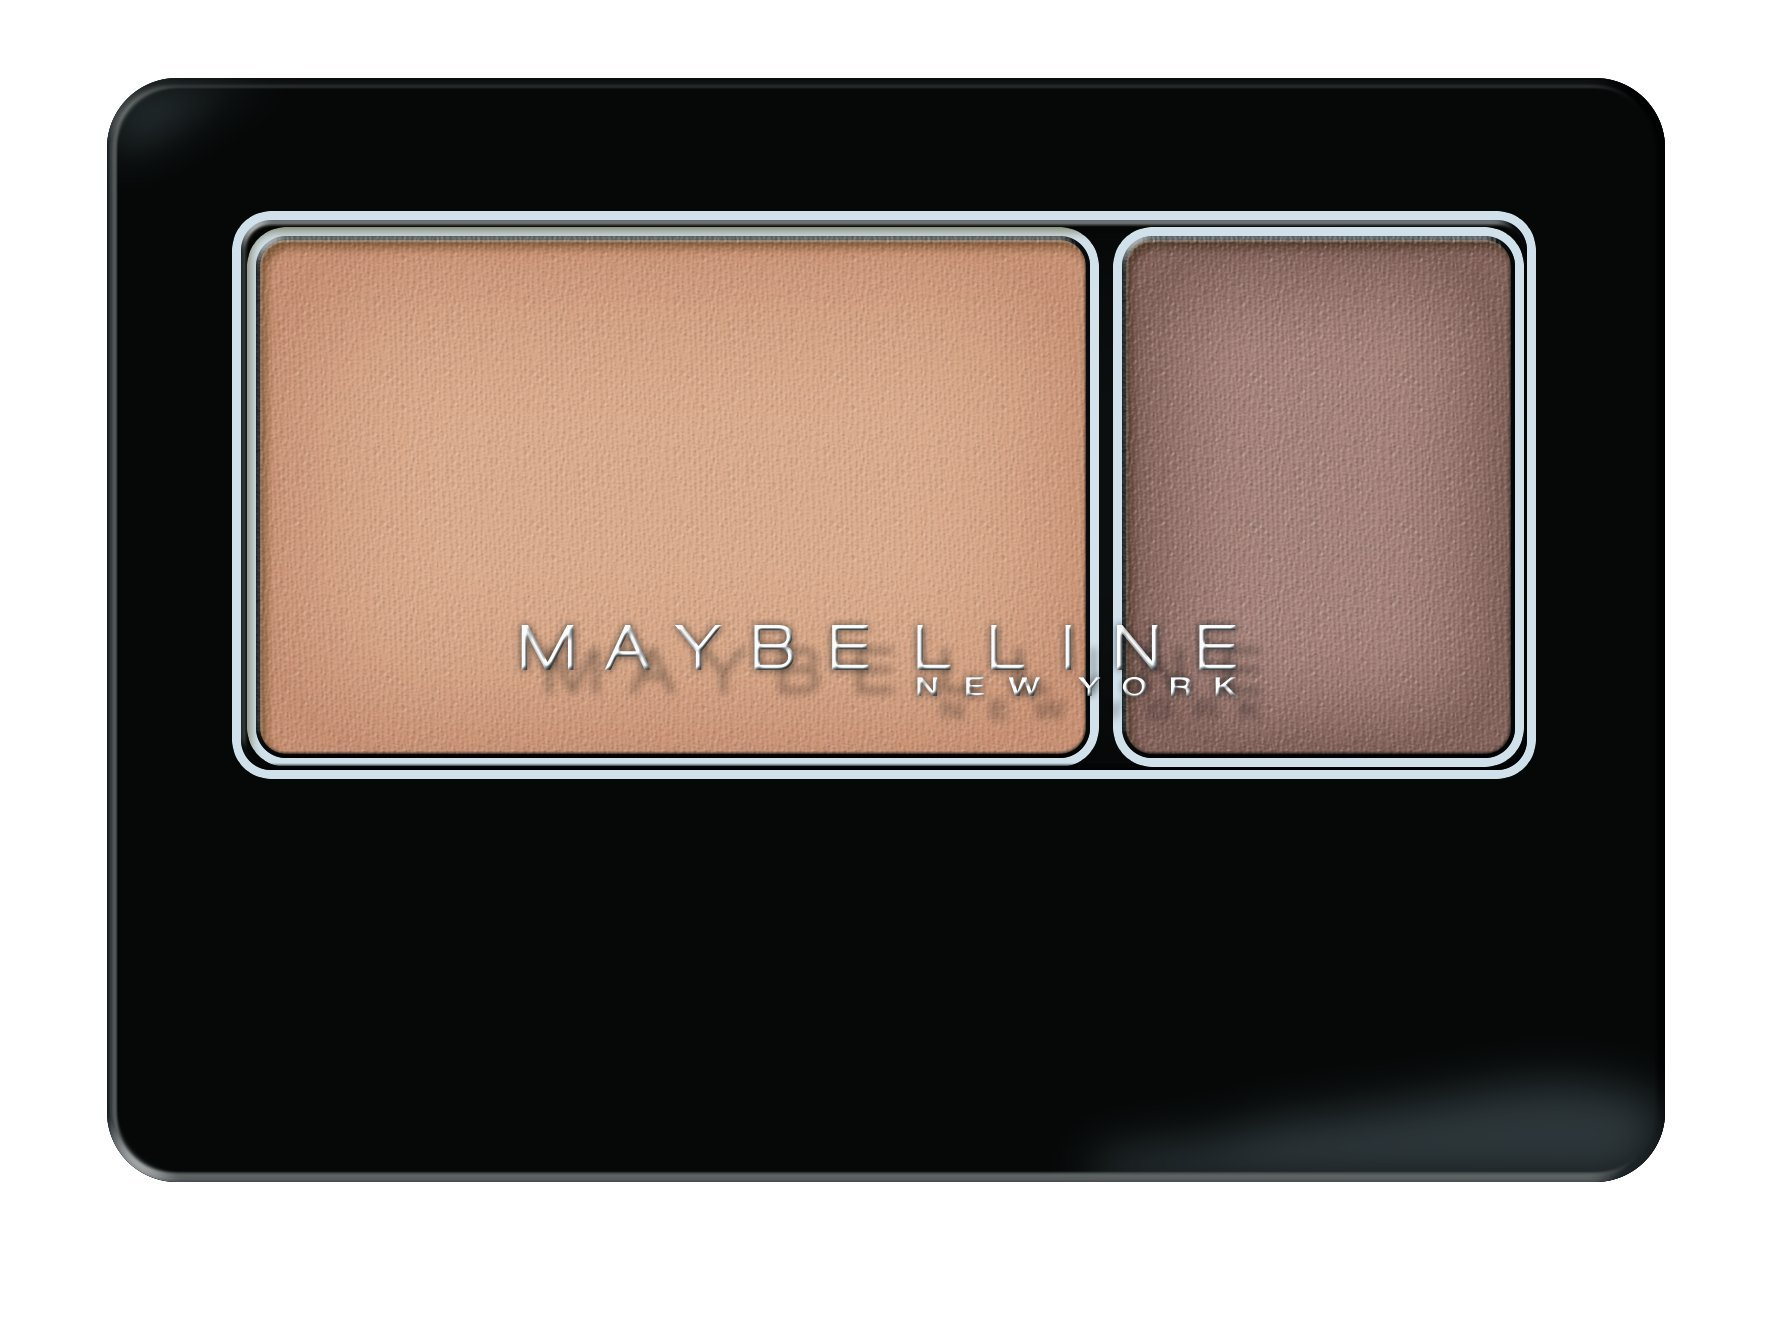 Maybelline New York Expert Wear Eyeshadow, Browntones, Duos, 0.08 Ounce